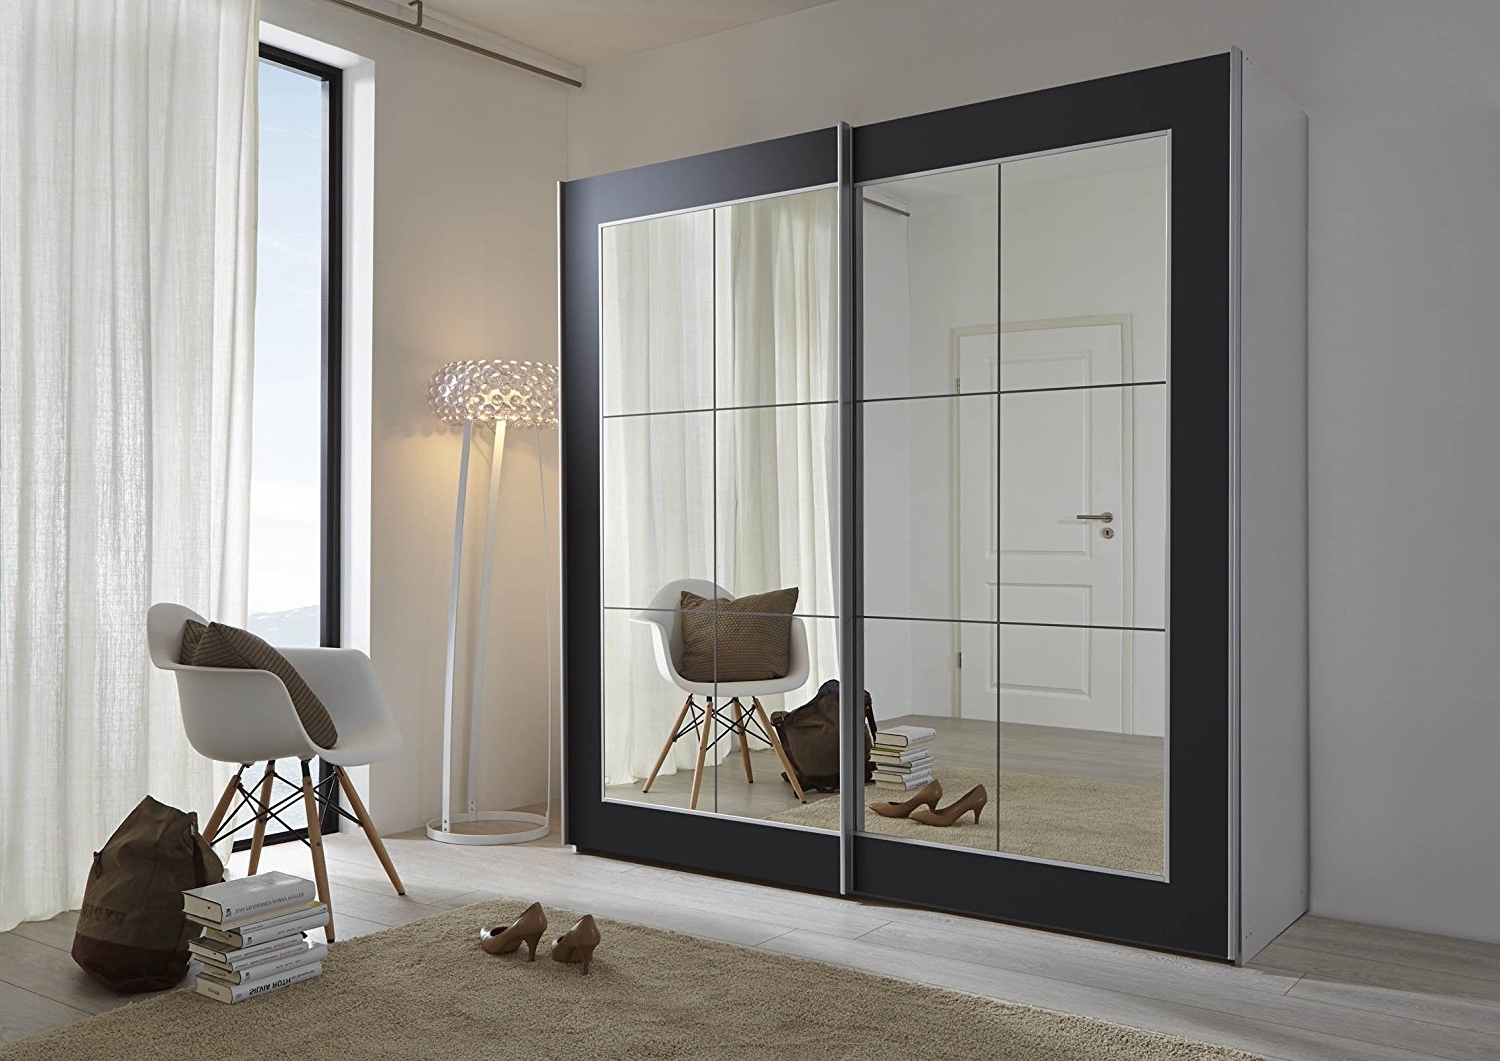 2018 Schlafzimmer Lattice: Black Sliding Door Wardrobe With Mirror Inside Black Sliding Wardrobes (View 9 of 15)